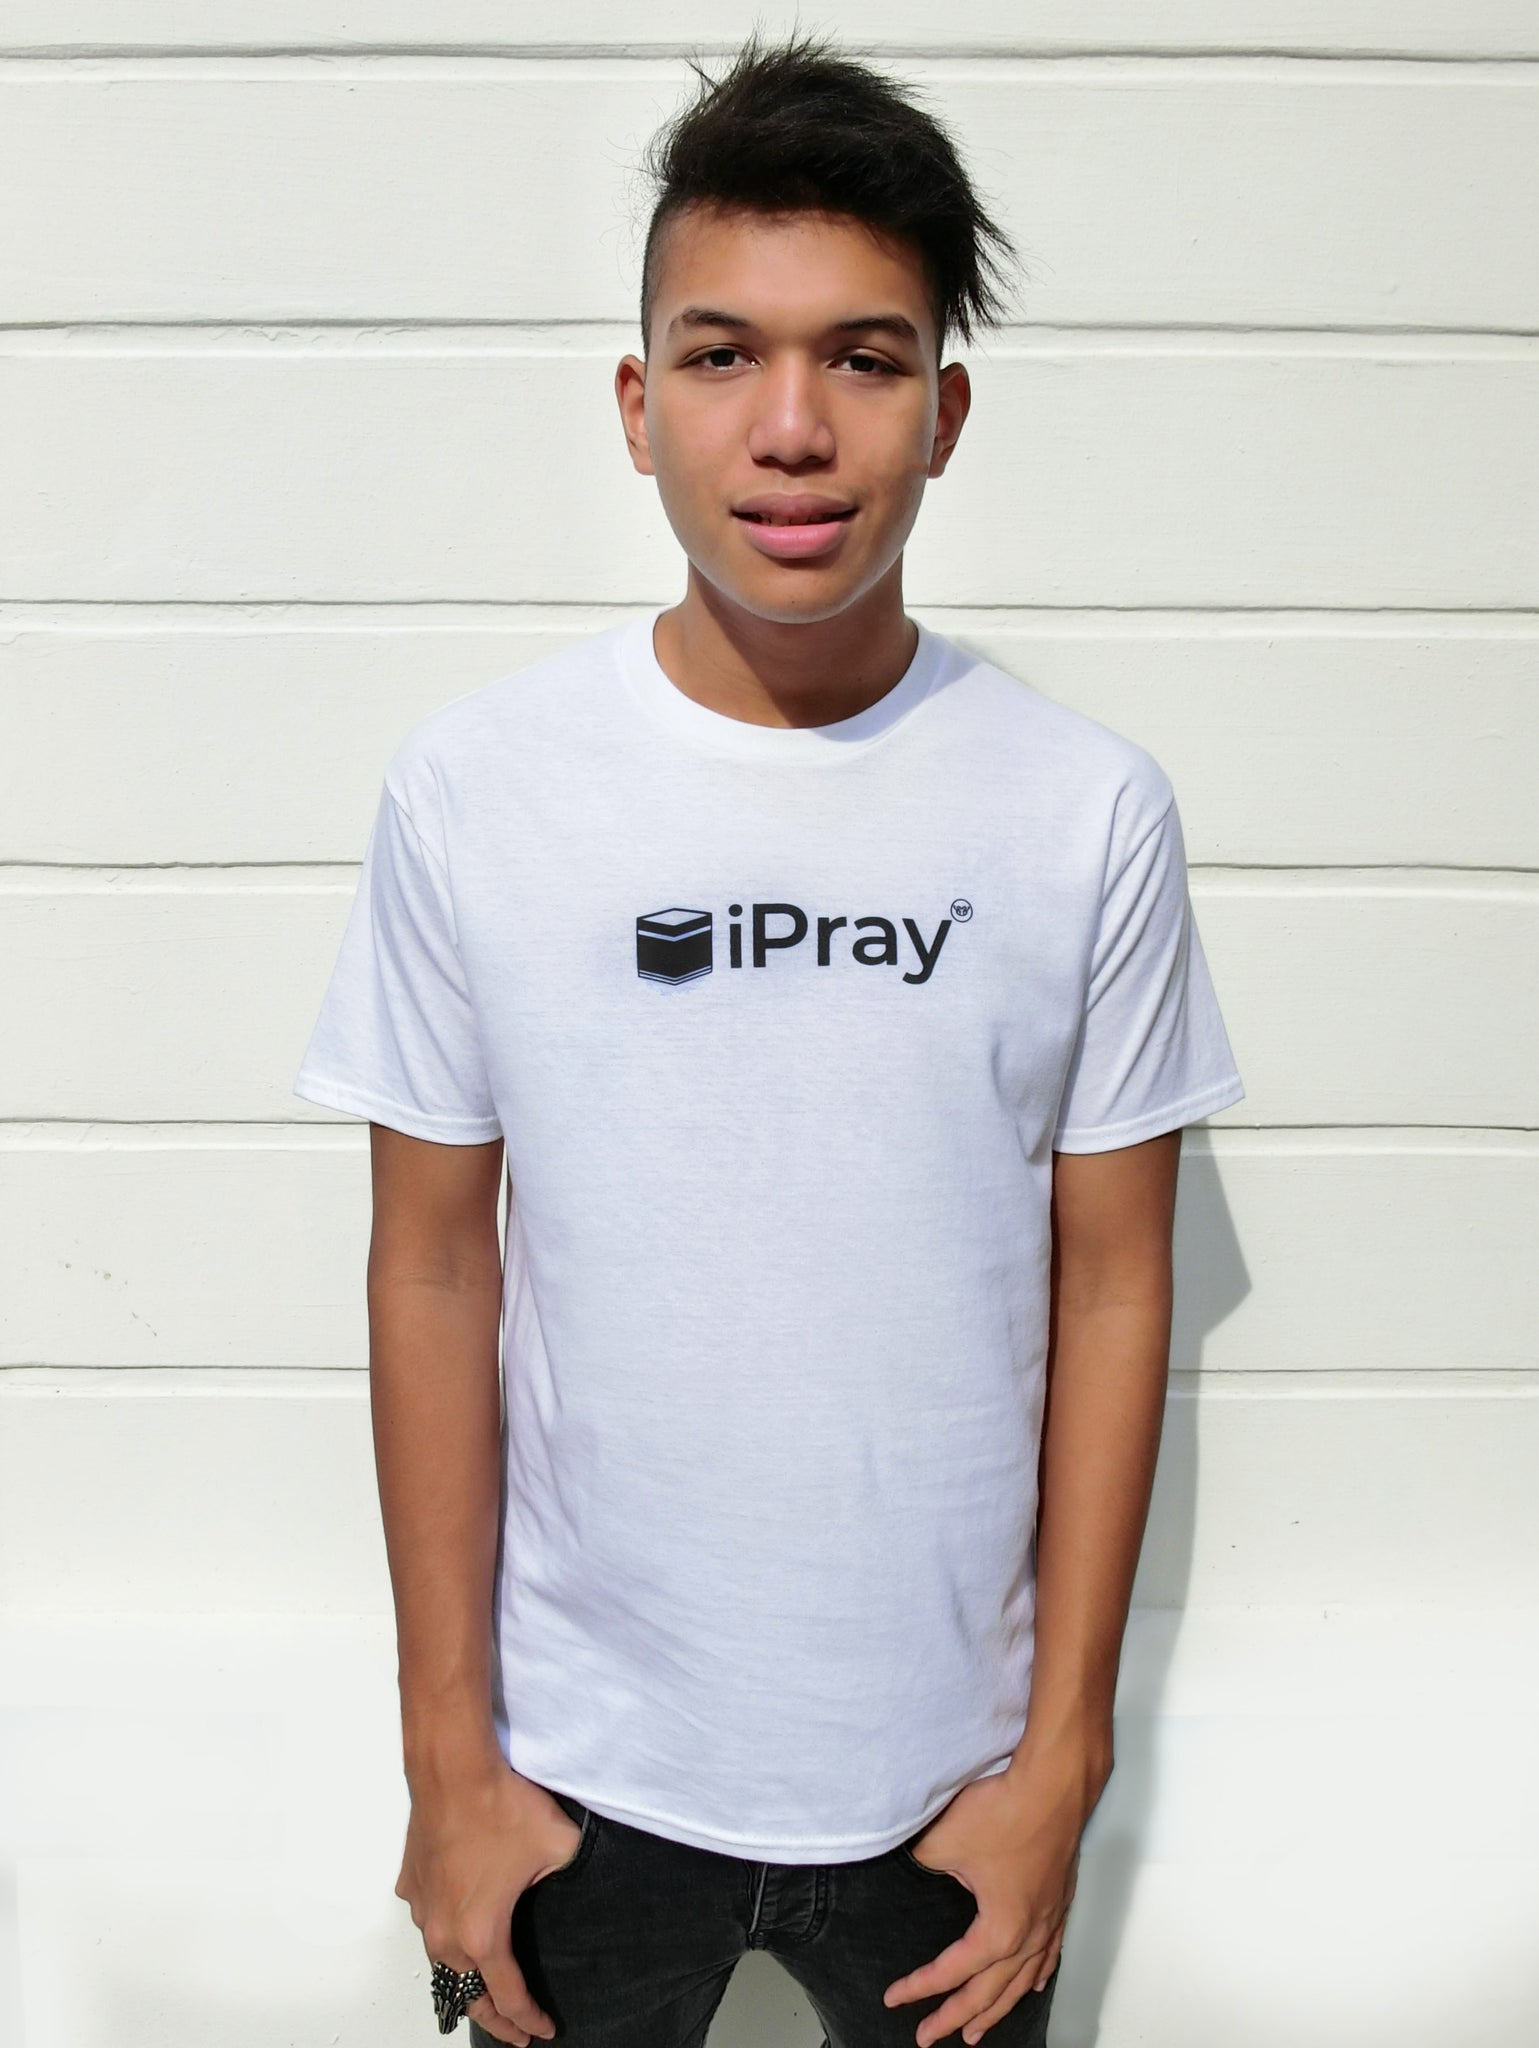 Tshirt - iPray in White